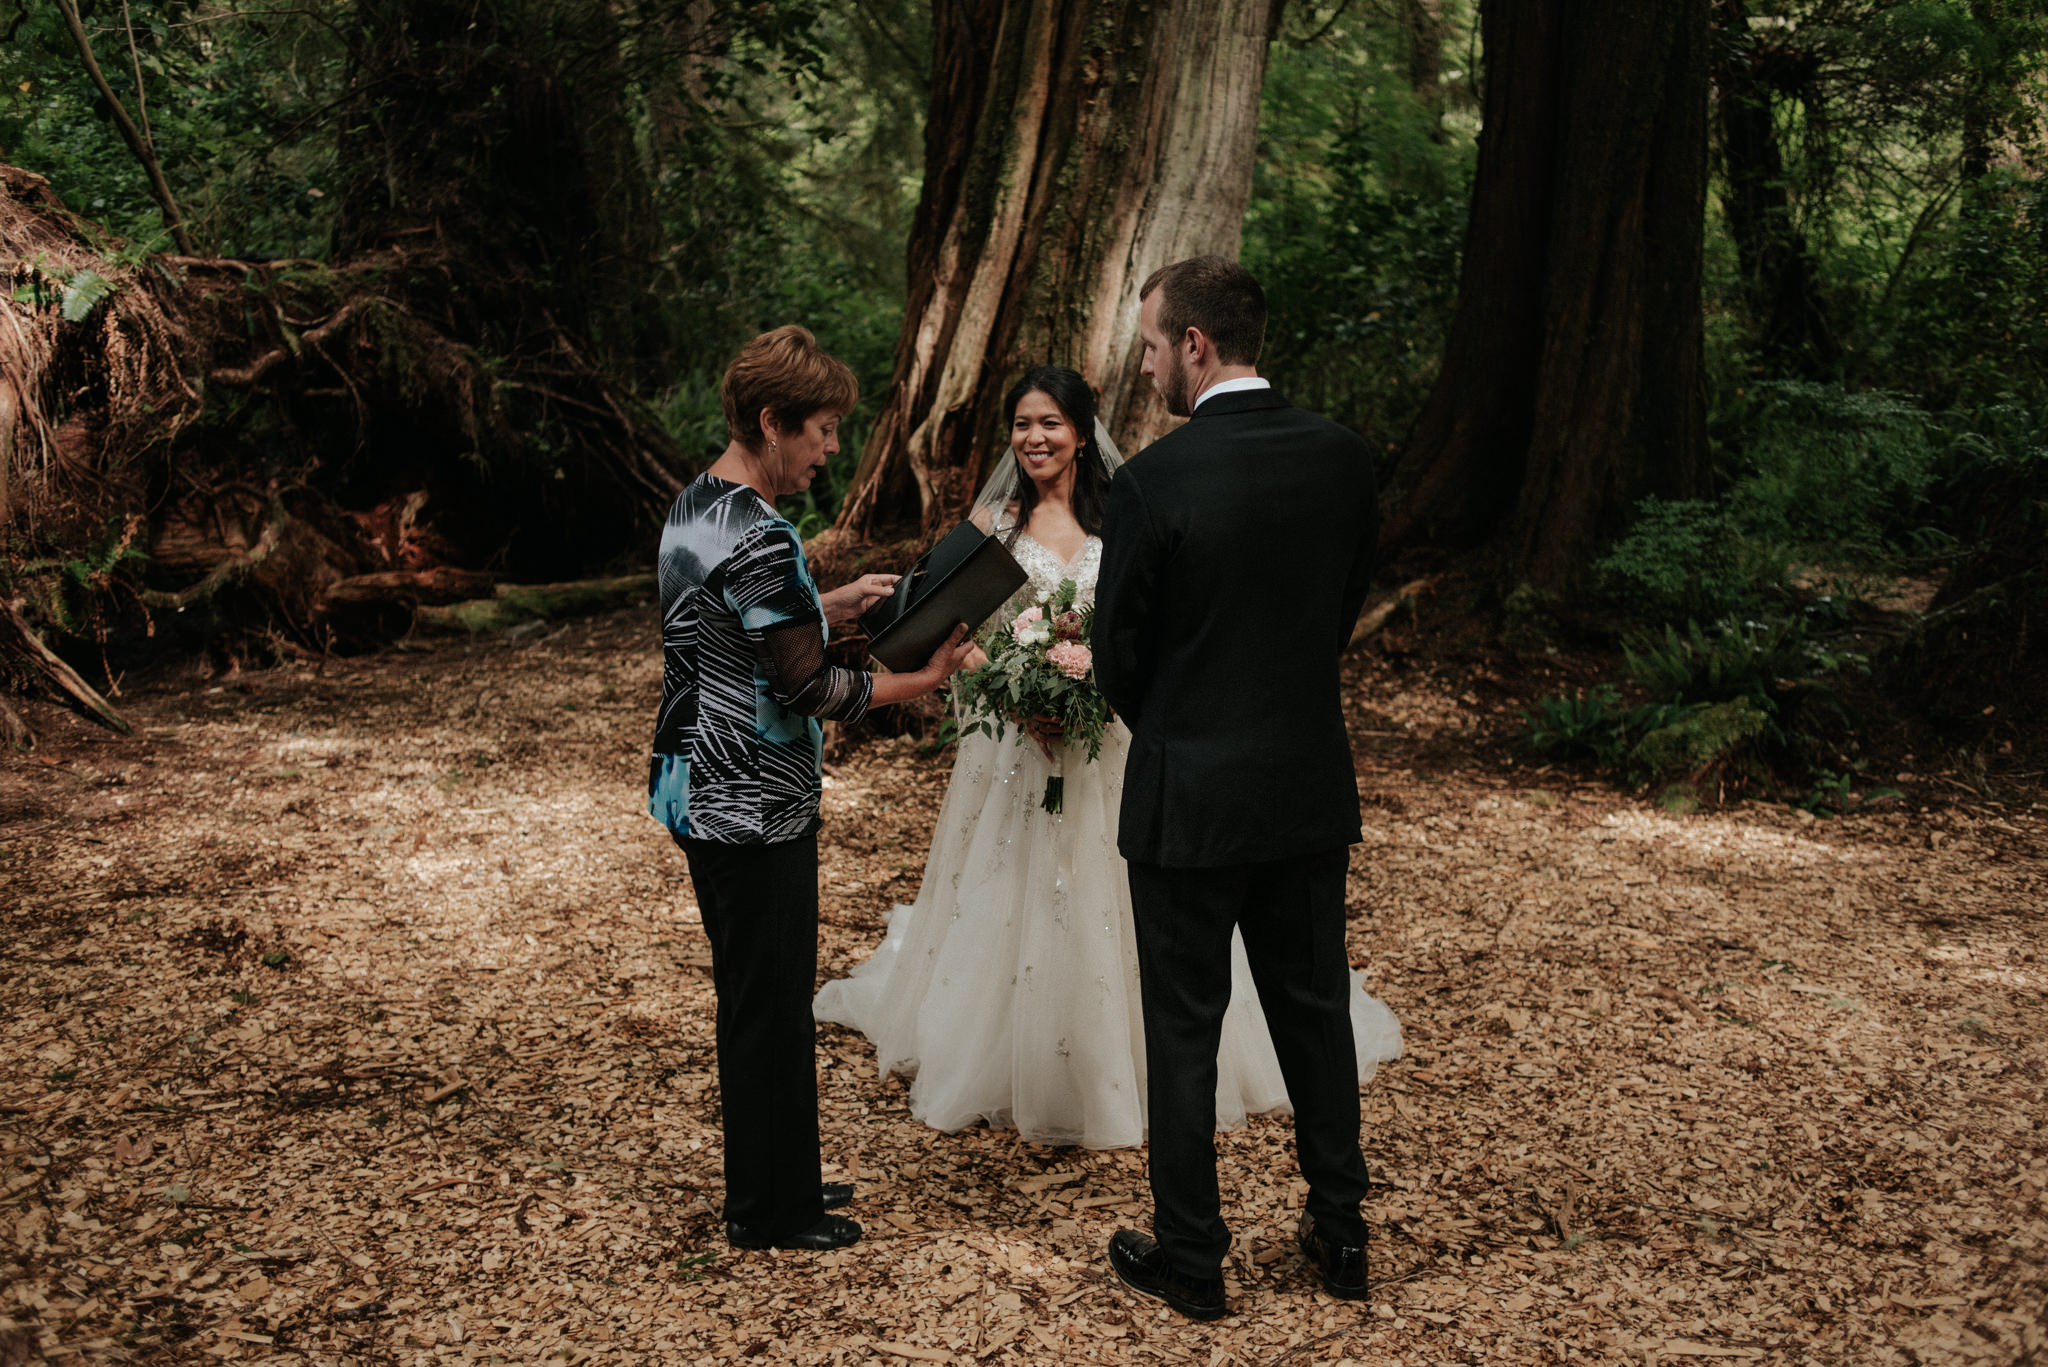 Tofino elopement ceremony at Wickaninnish Inn